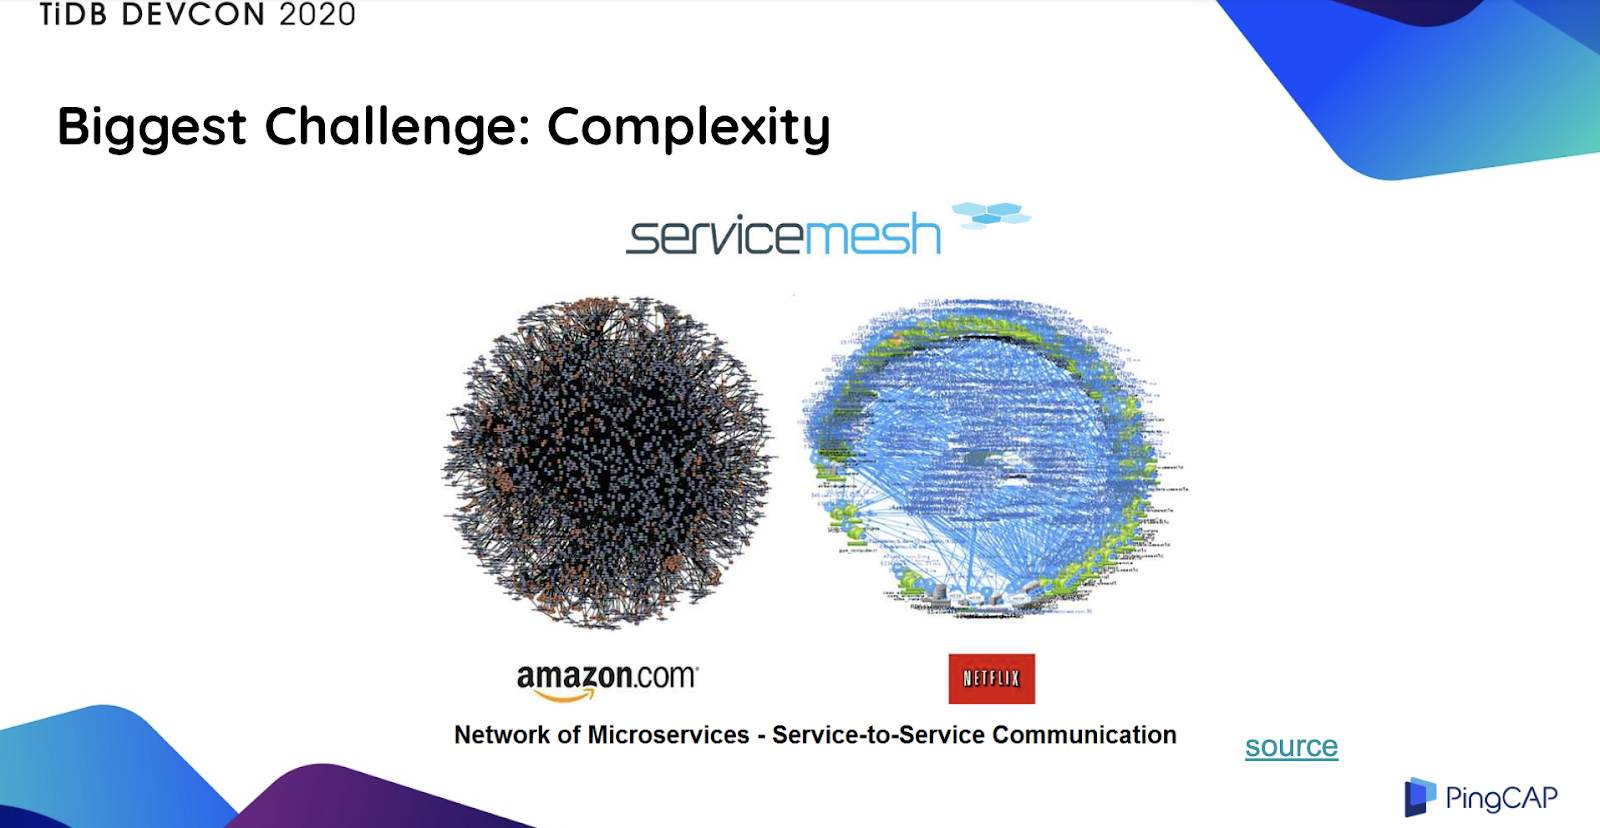 Amazon's and Netflix's microservices